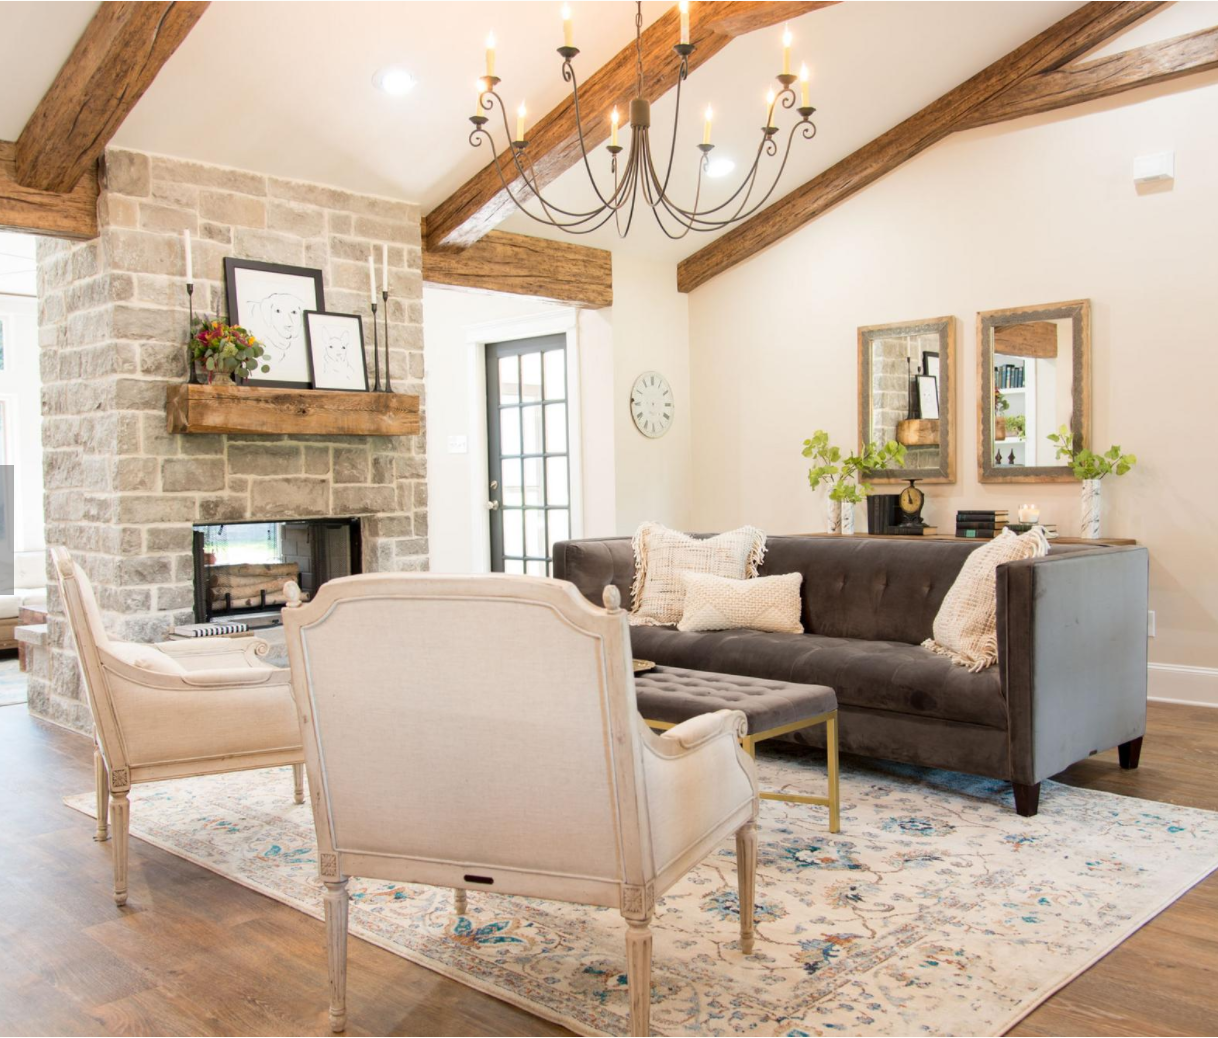 Fixer Upper Season 4 Episode 1 Living Room The Weathered Fox